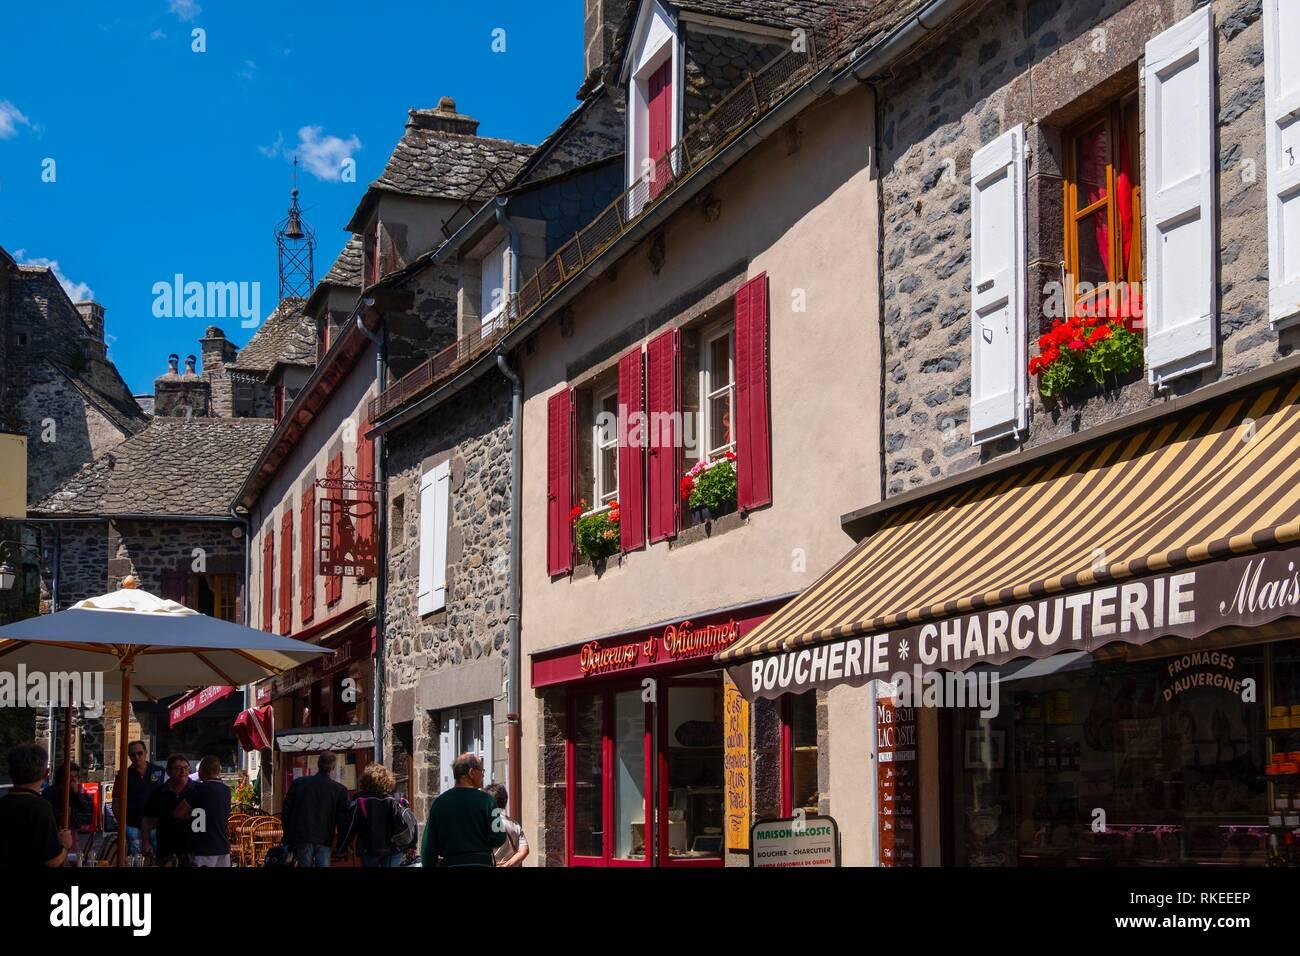 France, Auvergne, Cantal, at Salers. - Stock Image